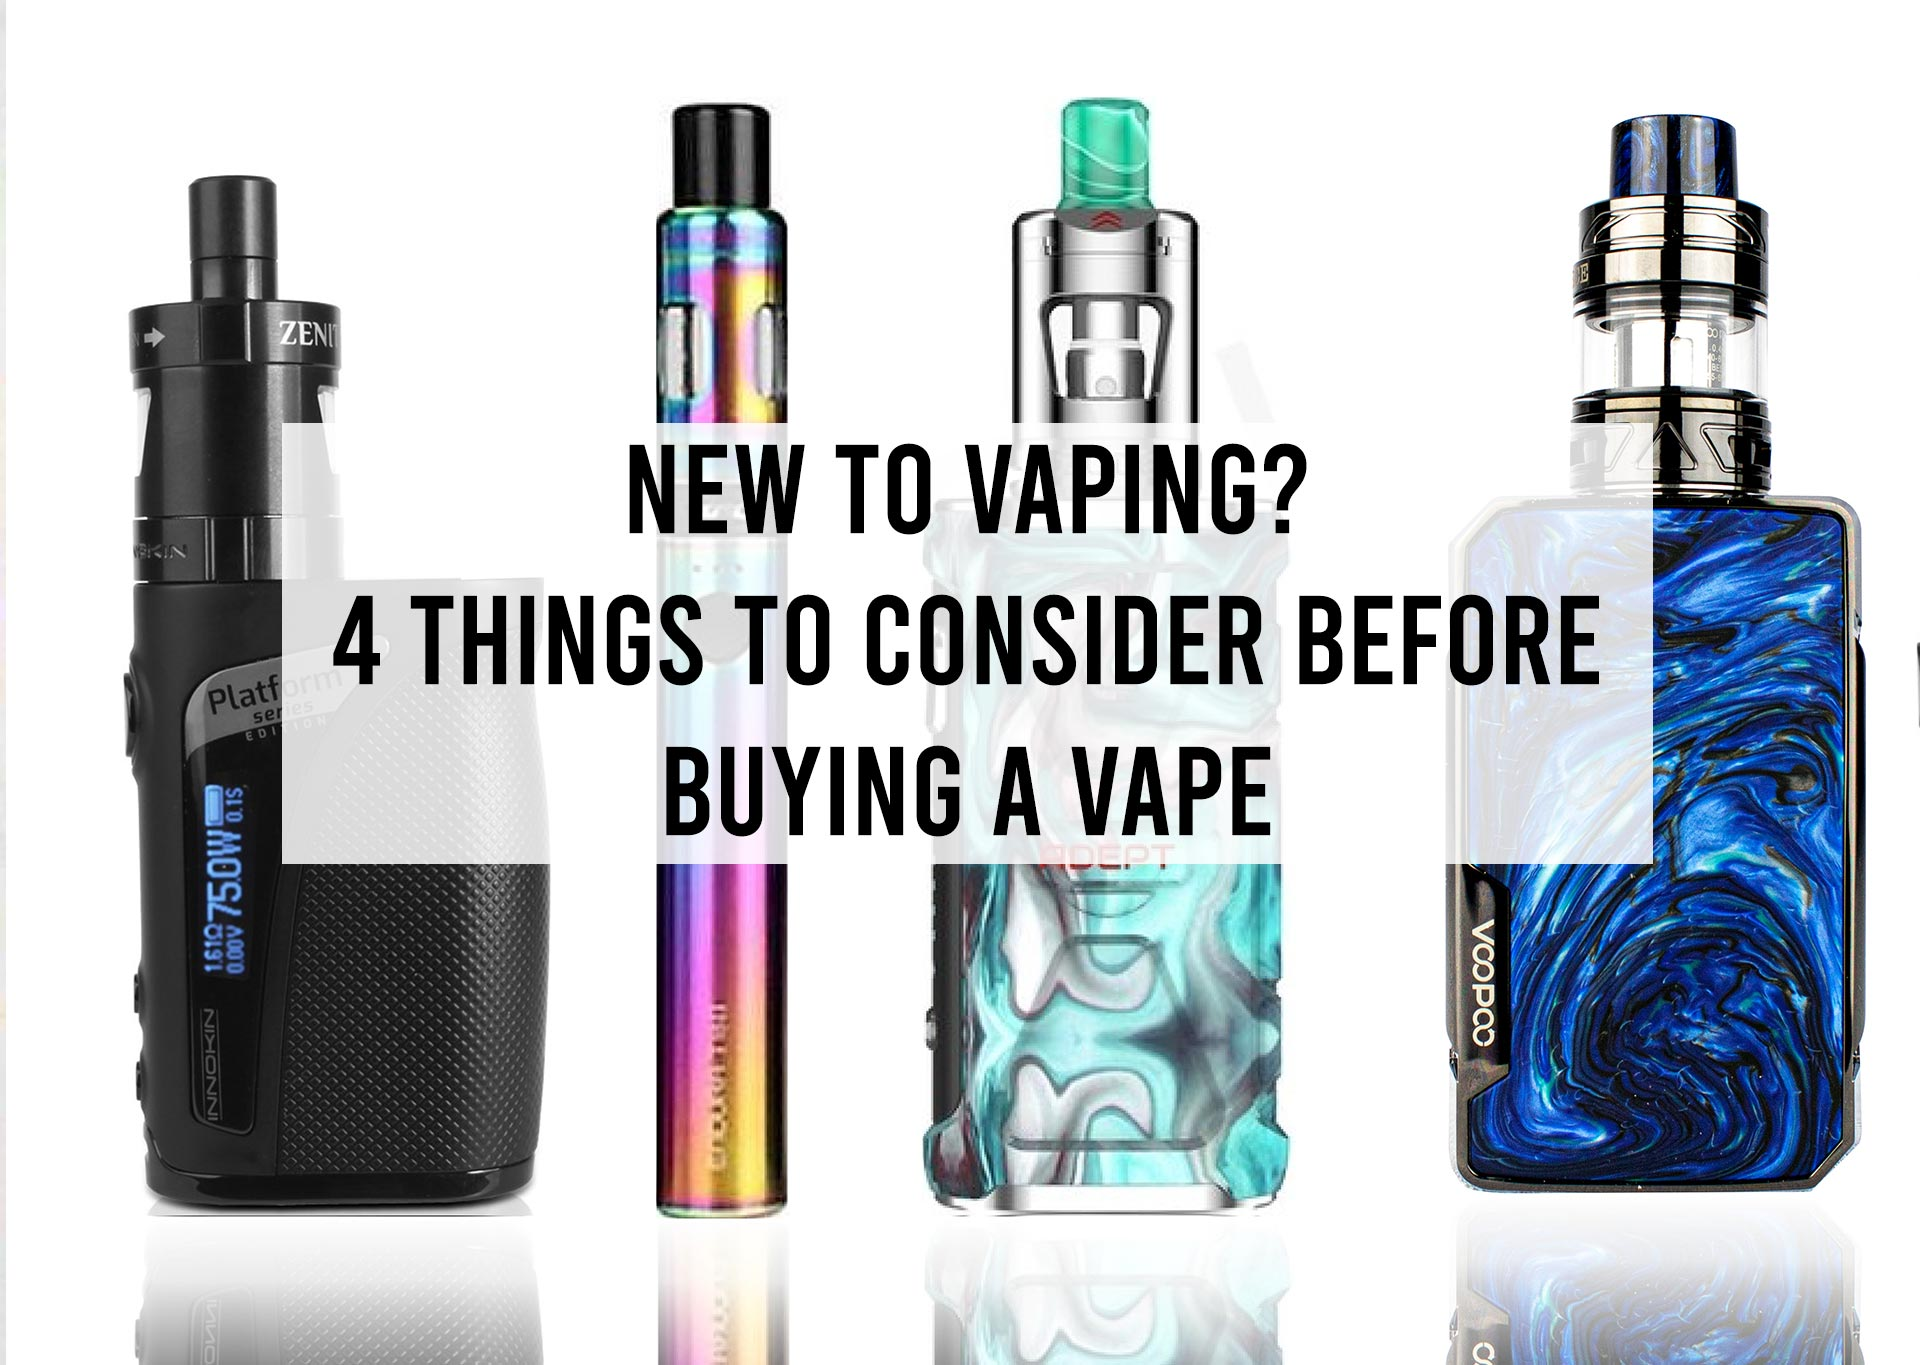 New-to-Vaping--4-Things-to-Consider-Before-Buying-a-Vape